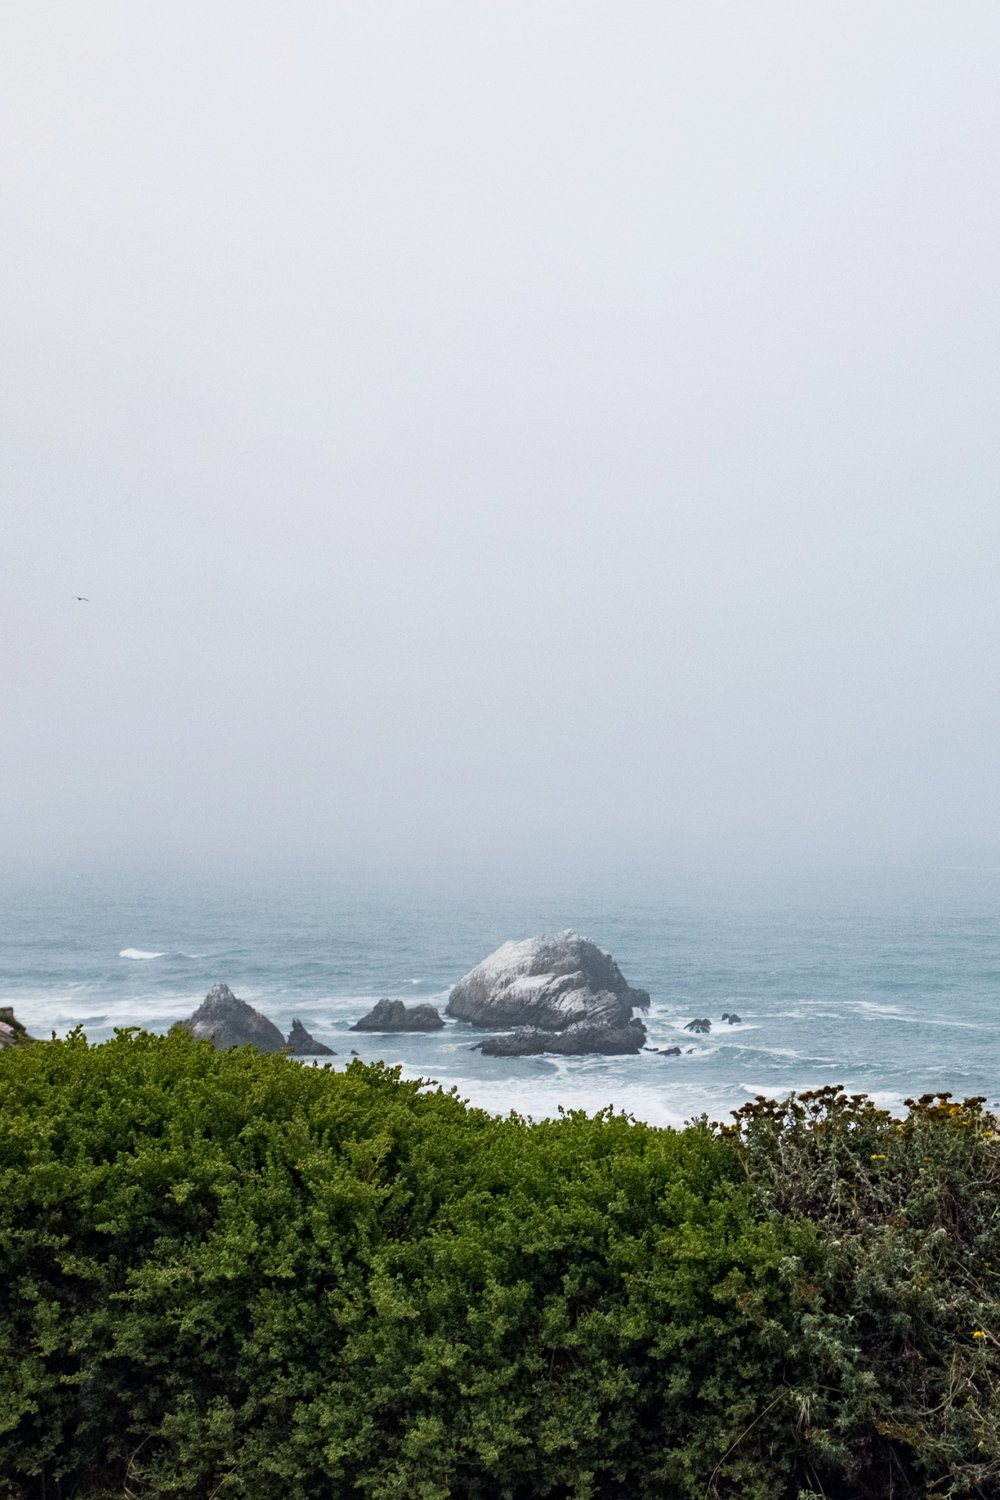 Foggy coastal views never get old